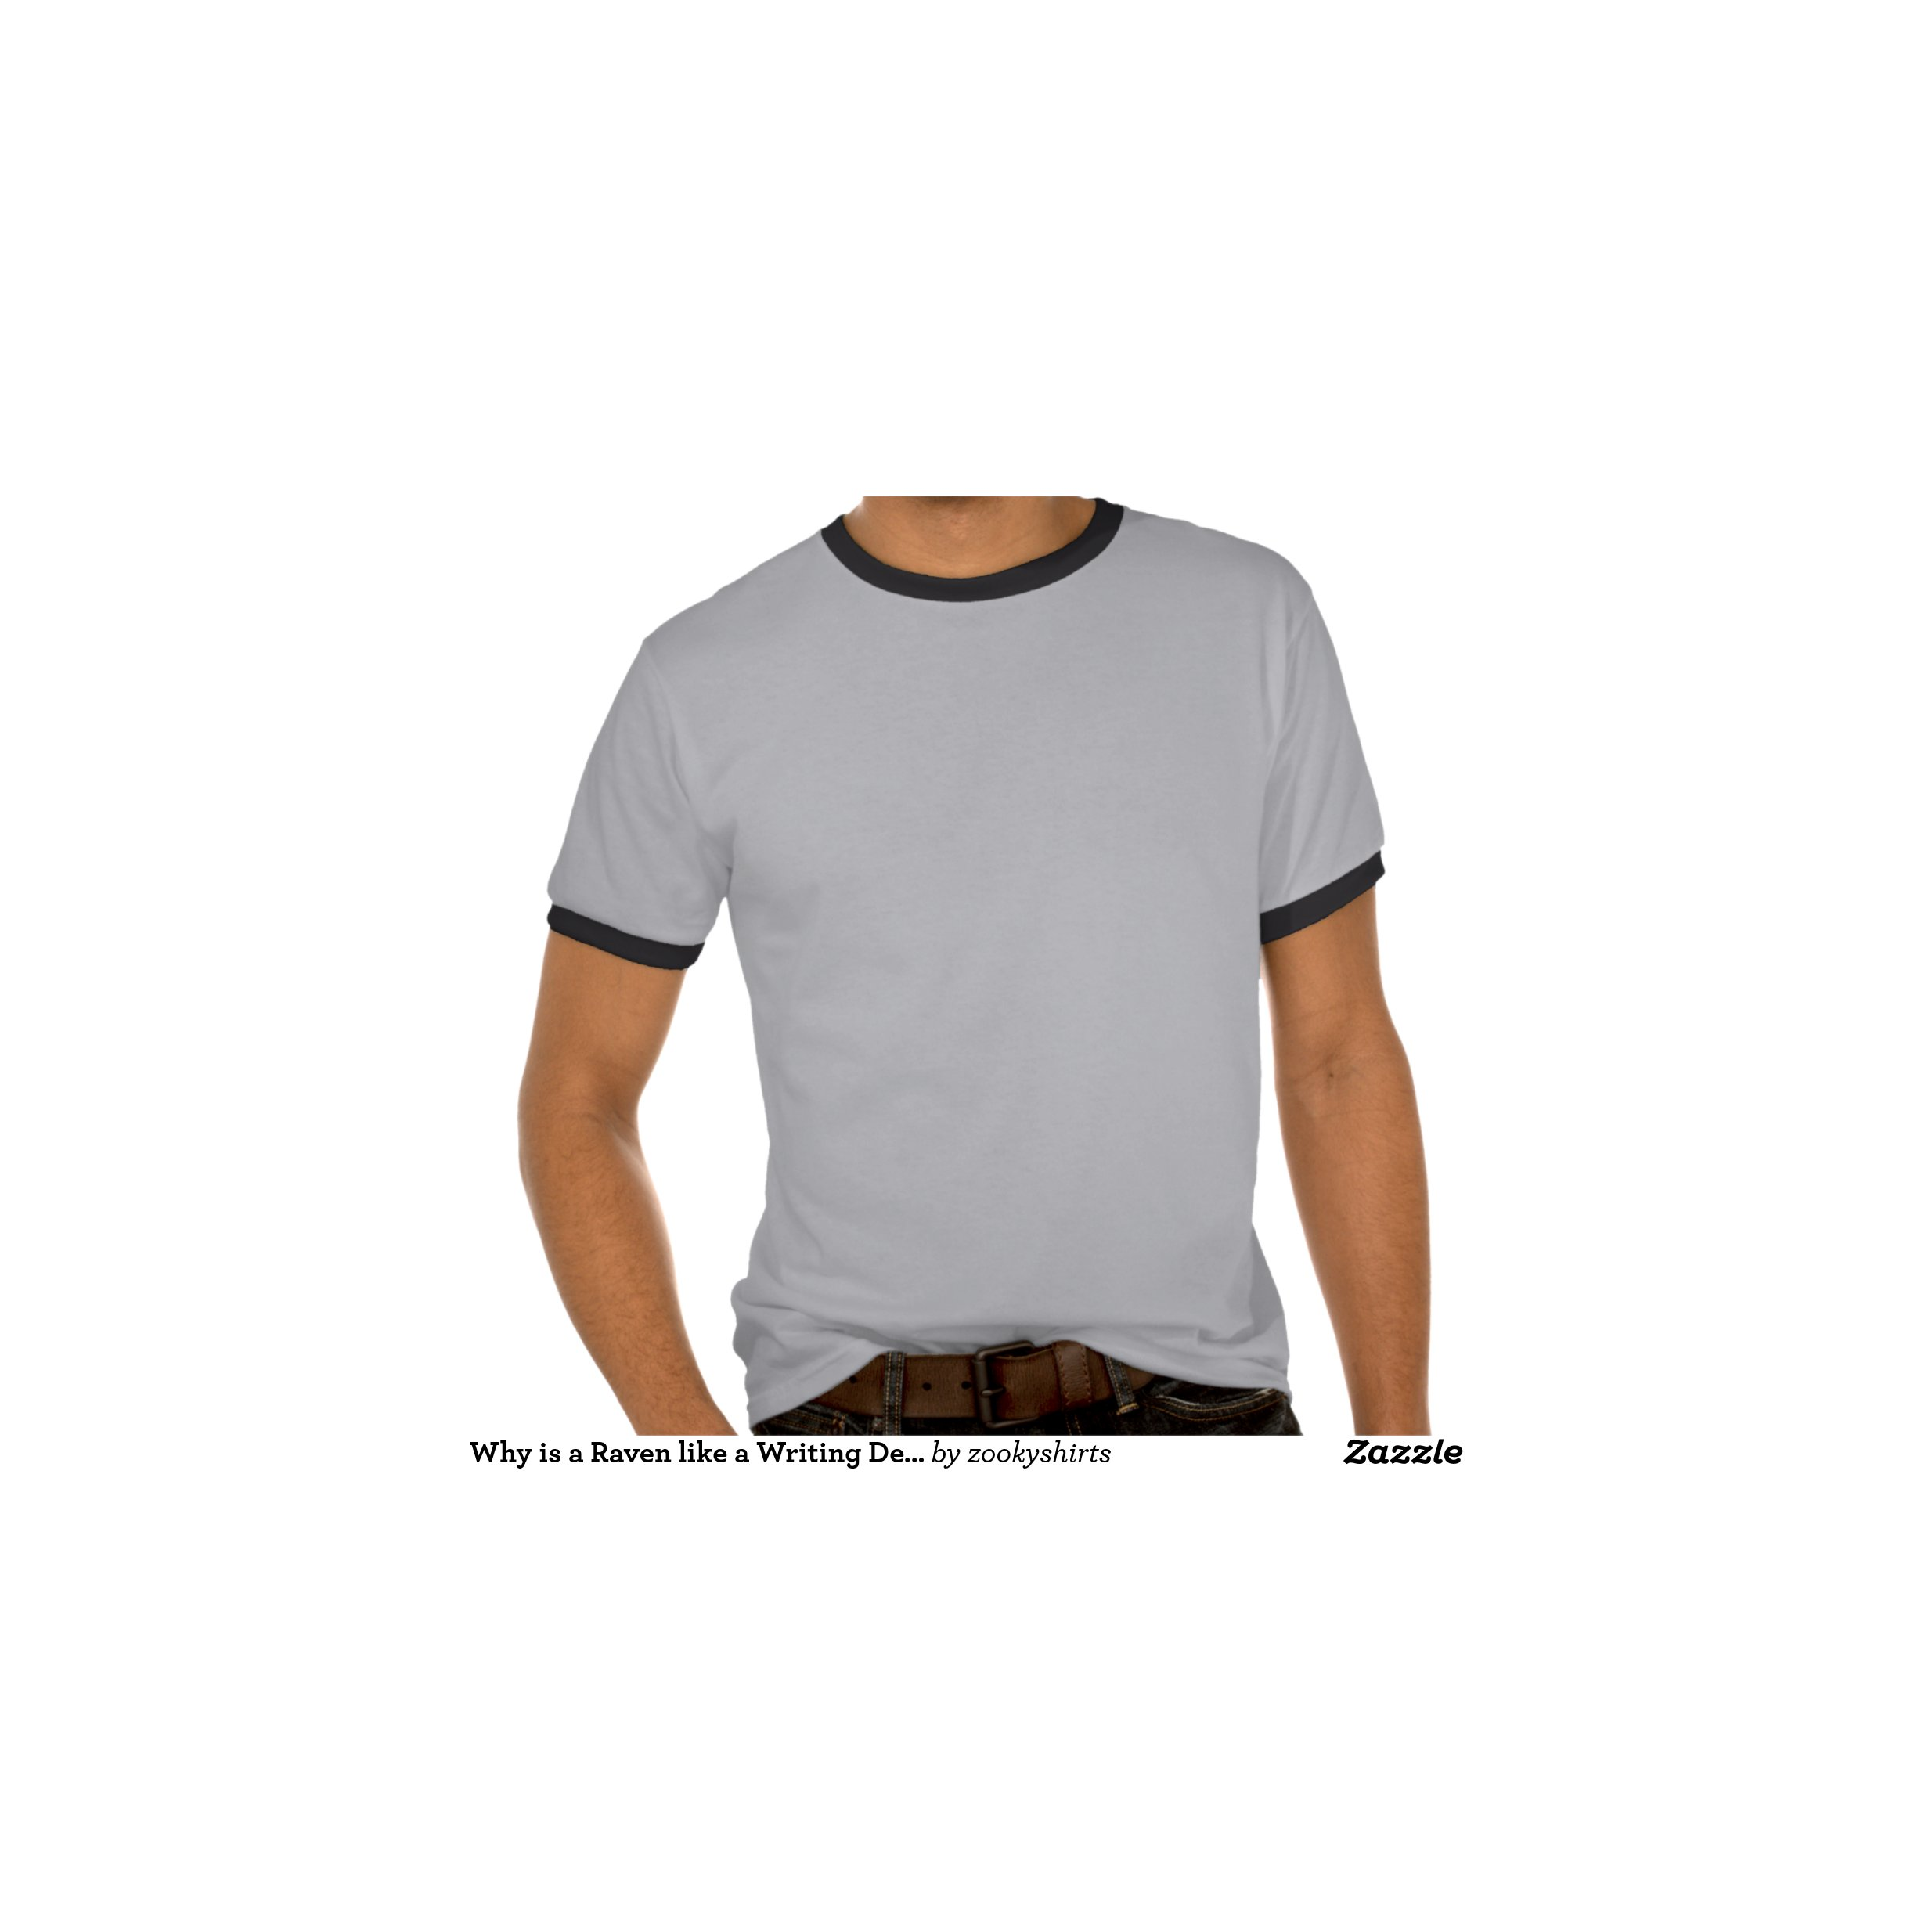 Very Impressive portraiture of why is a raven like a writing desk tee shirt  with #905D3B color and 2468x1296 pixels